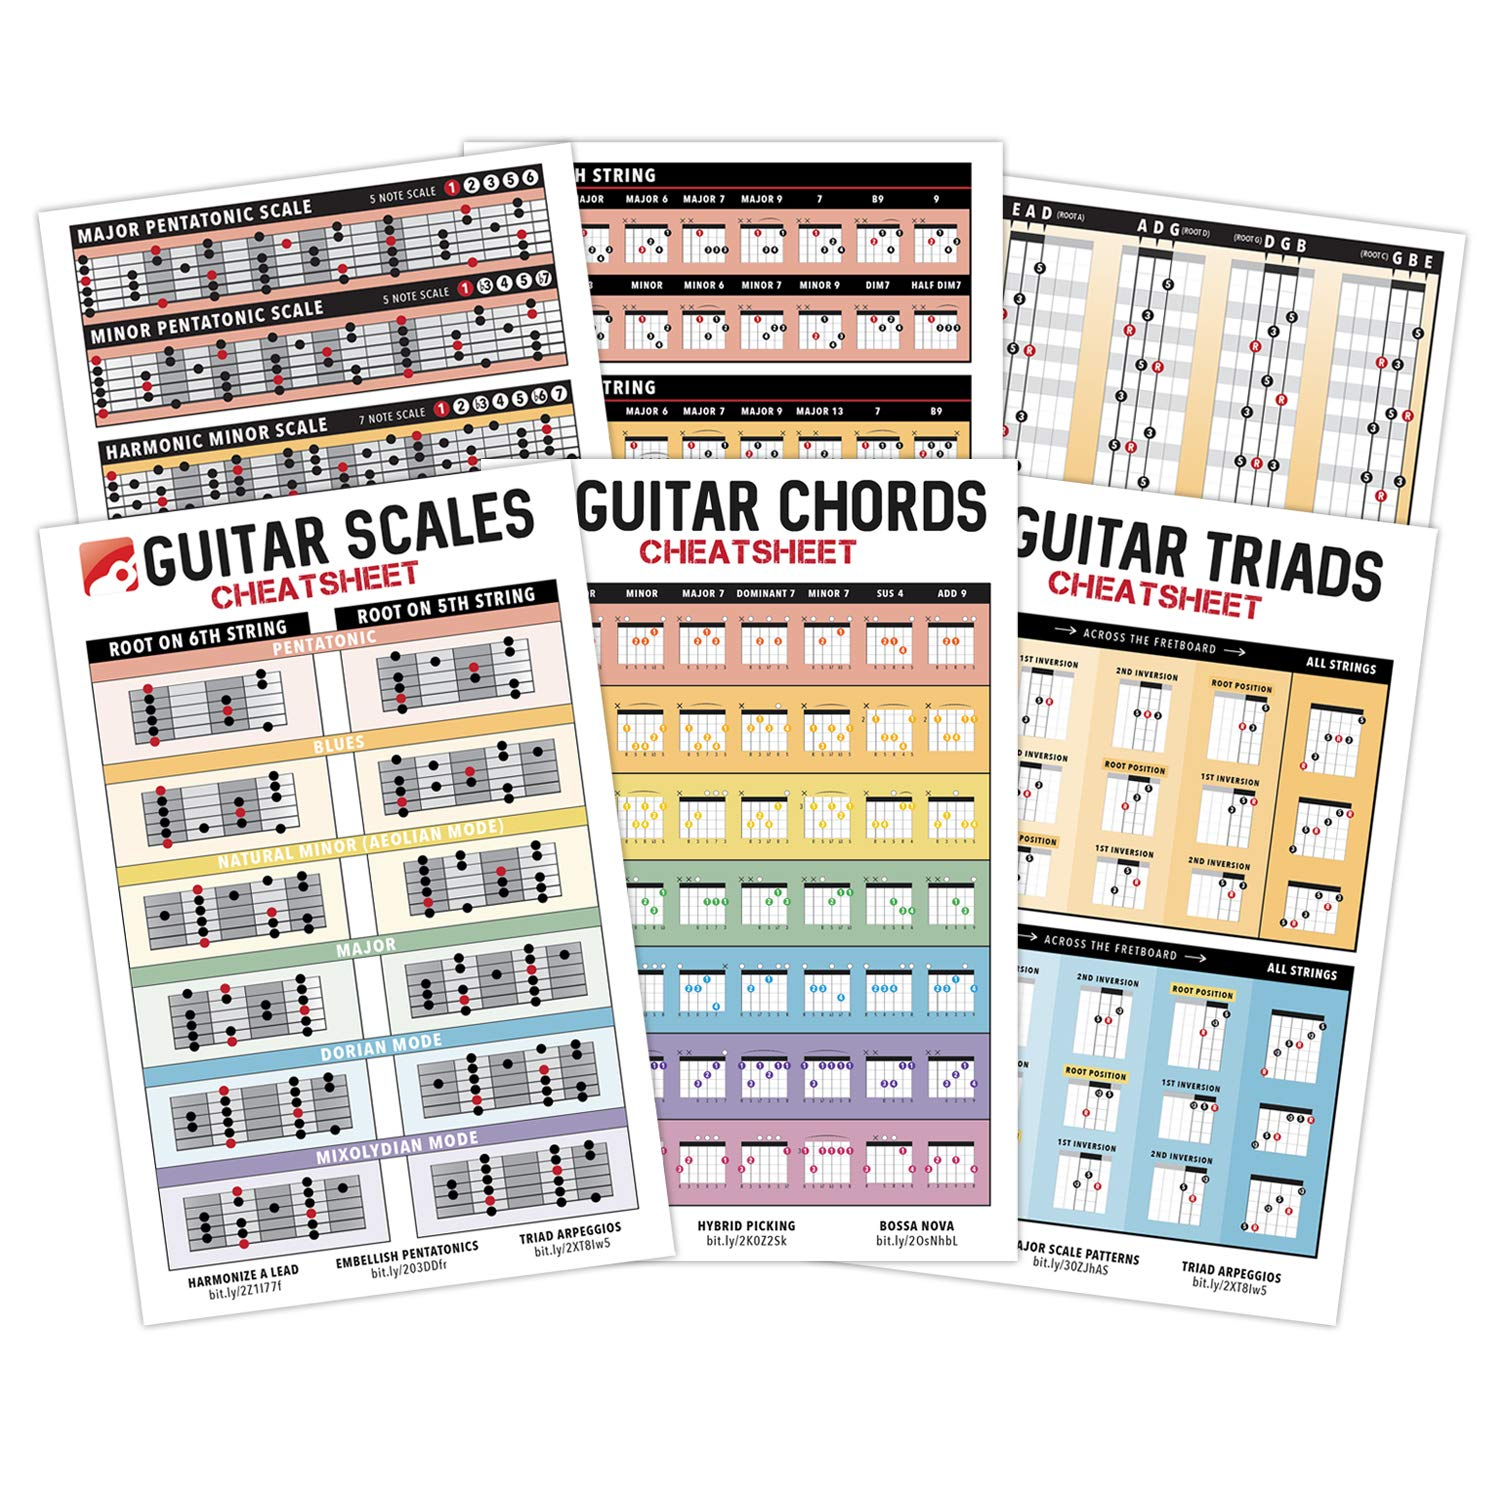 iVideosongs Guitar Cheatsheets Bundle (Chords, Scales & Triads) Pocket Reference • FREE Access 150+ Online Tutorials & Song Lessons • 4'' x 6'' by IVIDEOSONGS